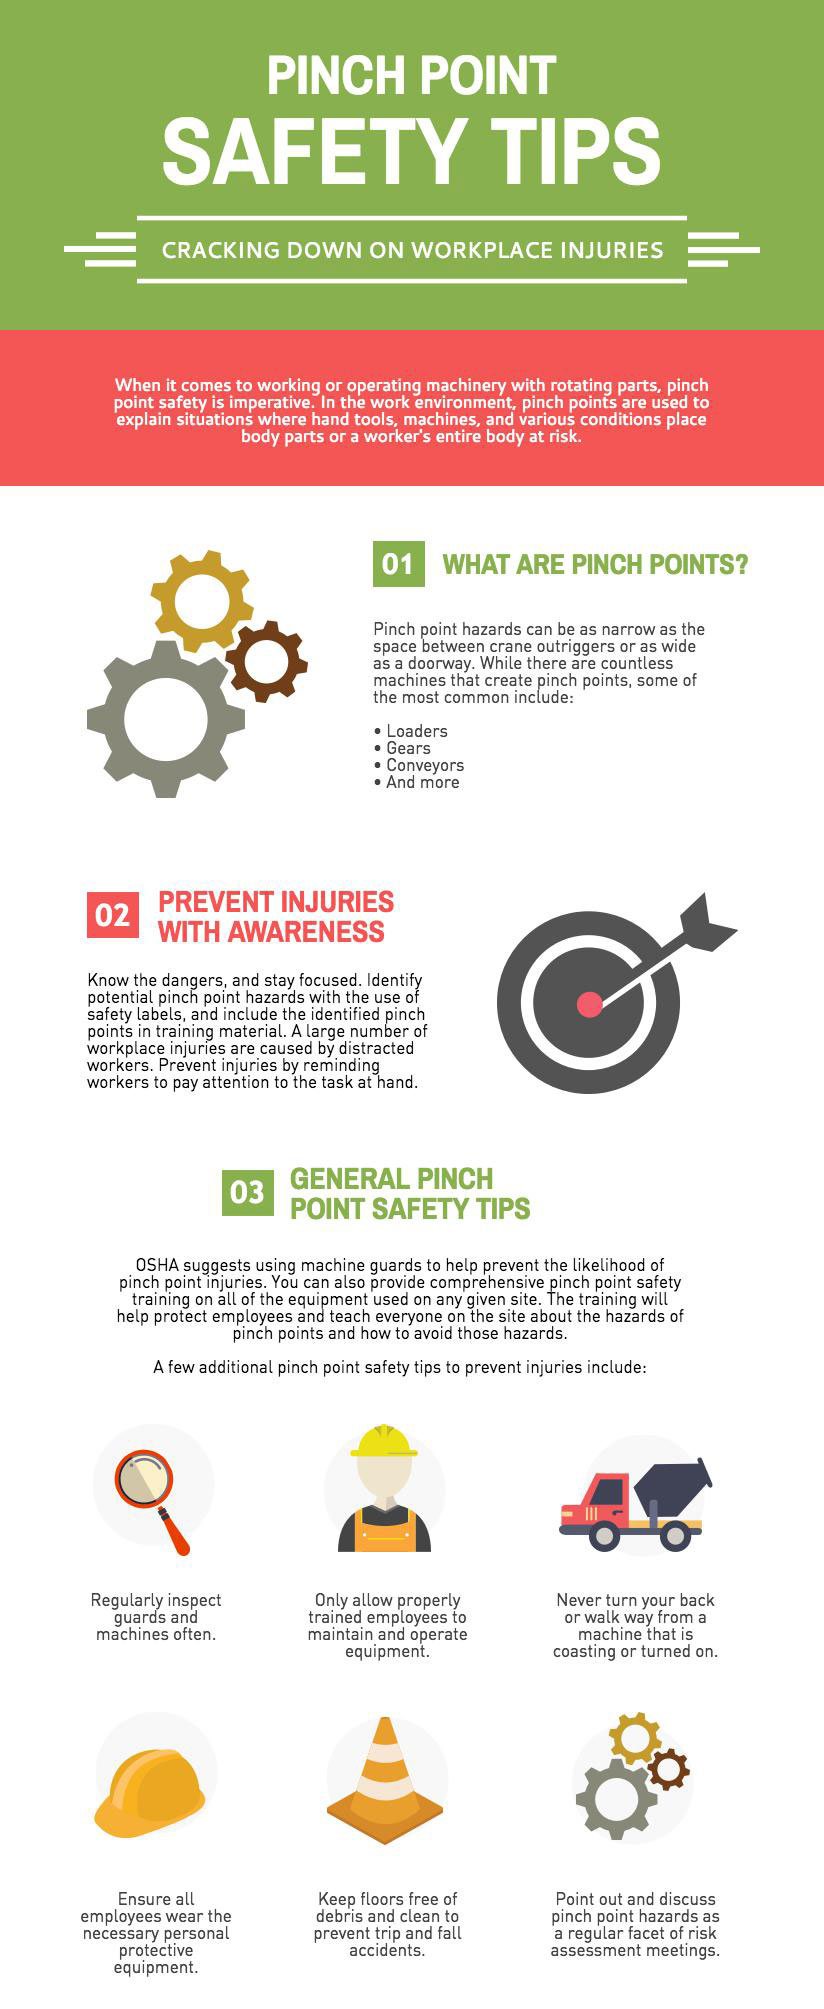 Infographic courtesy Premiere Safety Partners